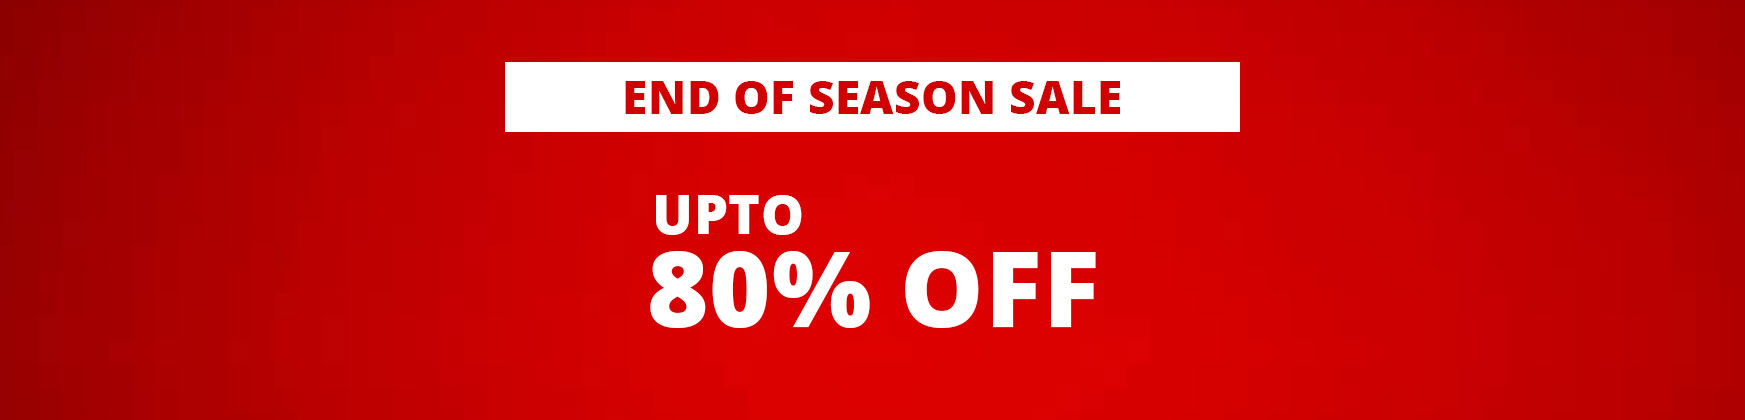 End of season sale - Upto 80% off